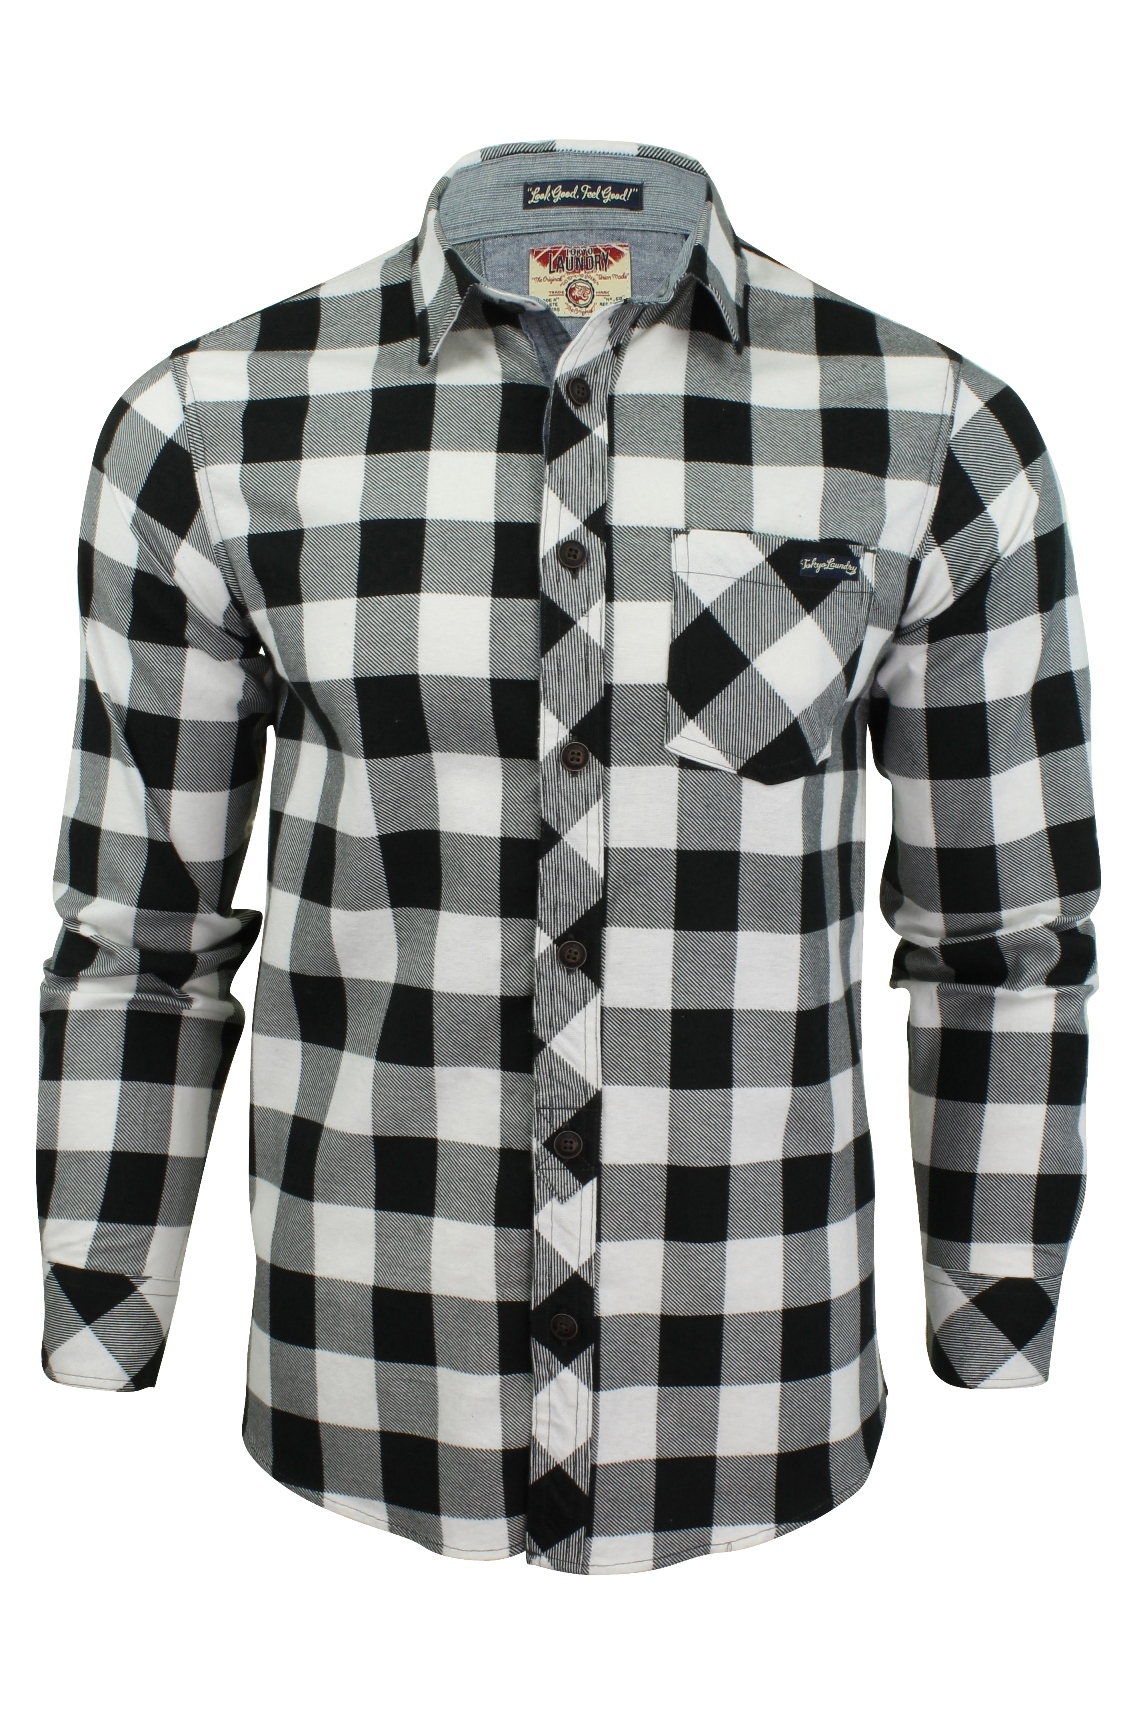 Mens Flannel Check Shirt By Tokyo Laundry 39 Wilding 39 Long